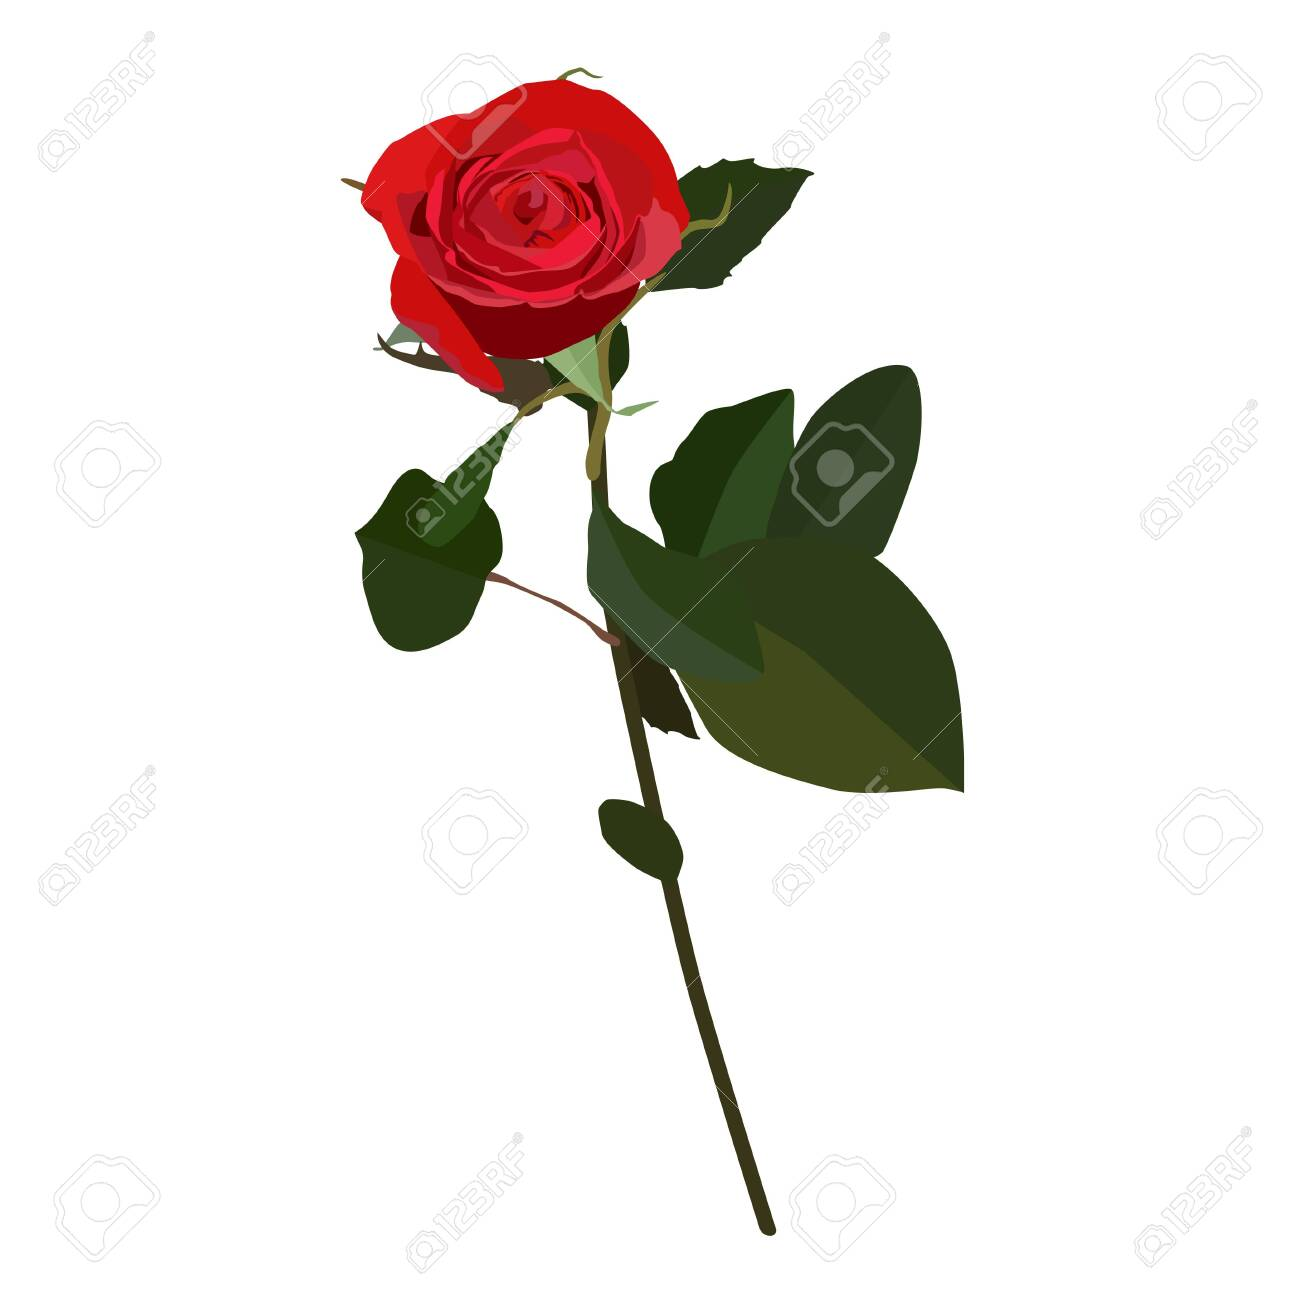 Blooming red rose, vector flat isolated illustration. Beautiful flower for greeting card, invitation, poster, banner. - 124100697